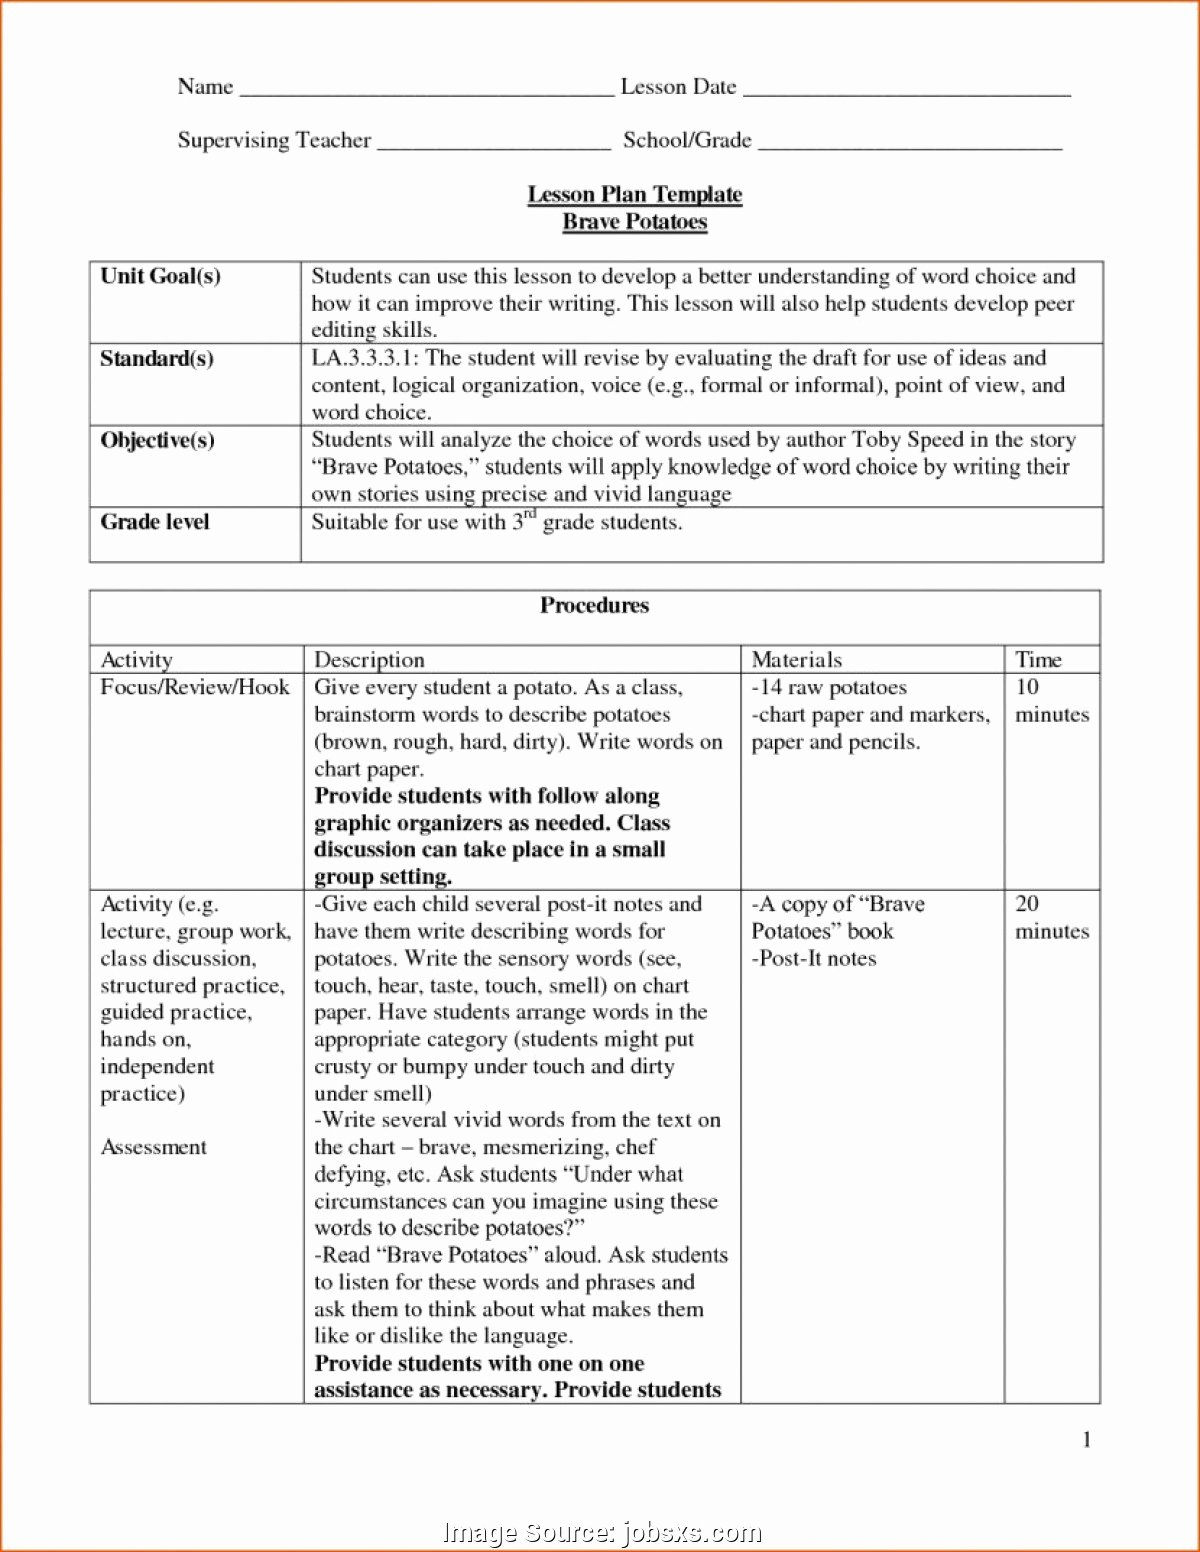 Dance Lesson Plan Templates Lovely Fresh Lesson Plan for Preschool Gymnastics Tumbling Skill Progressions